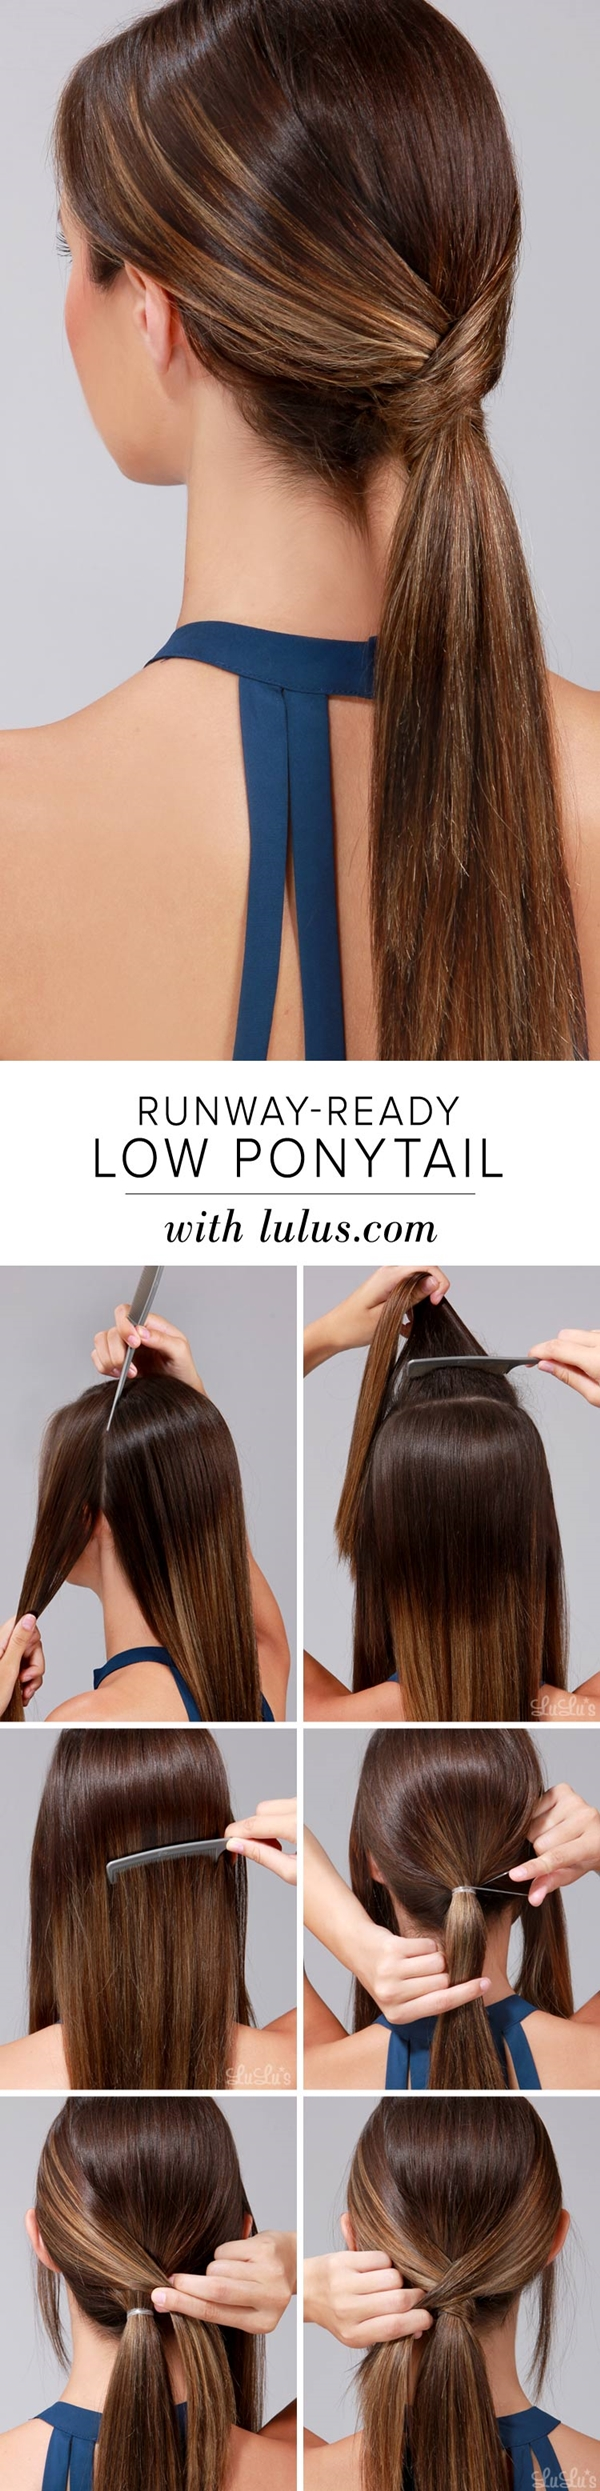 40 Quick And Easy Back To School Hairstyle For Long Hair